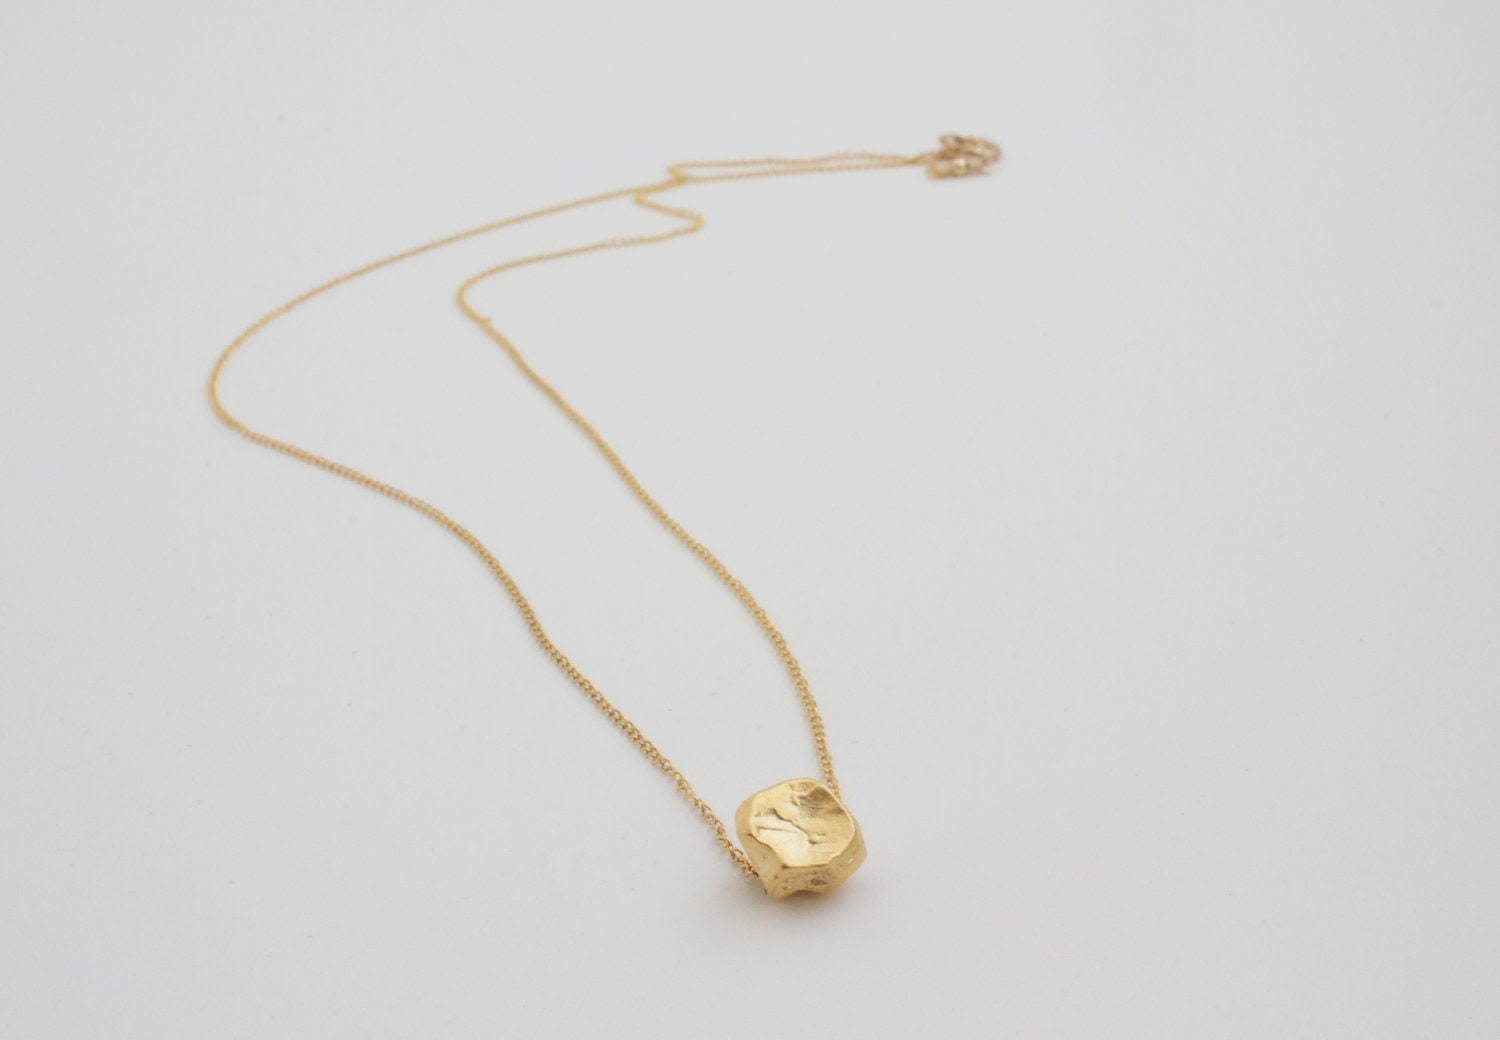 Gold Pebble Charm Neckace Simple Modern Everyday Jewelry 14K